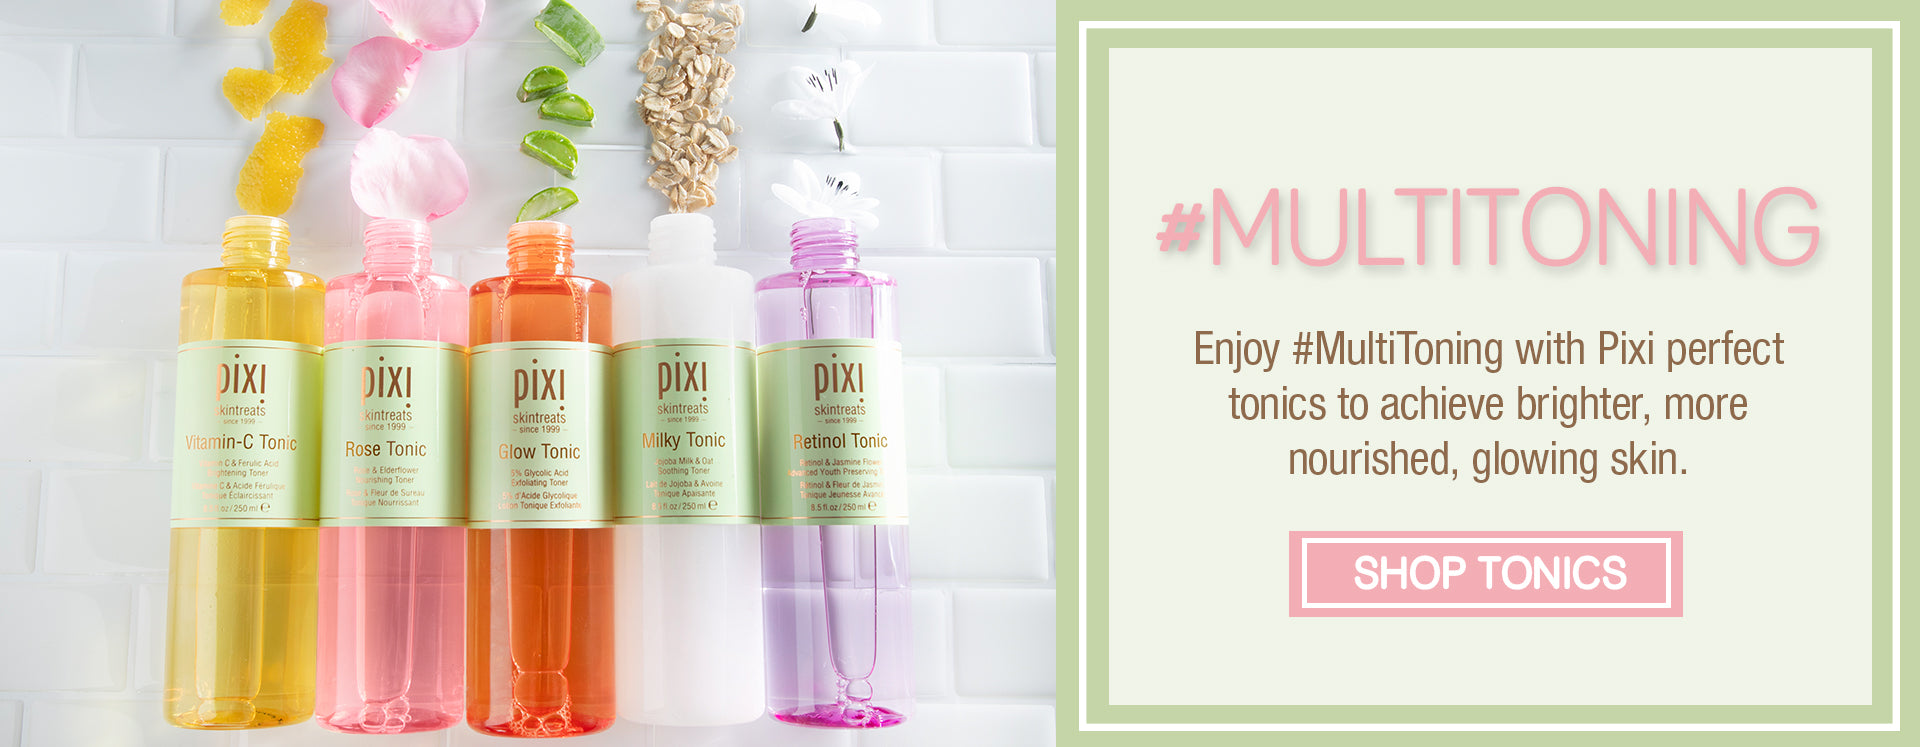 Pixi Beauty | Cosmetics, Makeup and Beauty Products Online